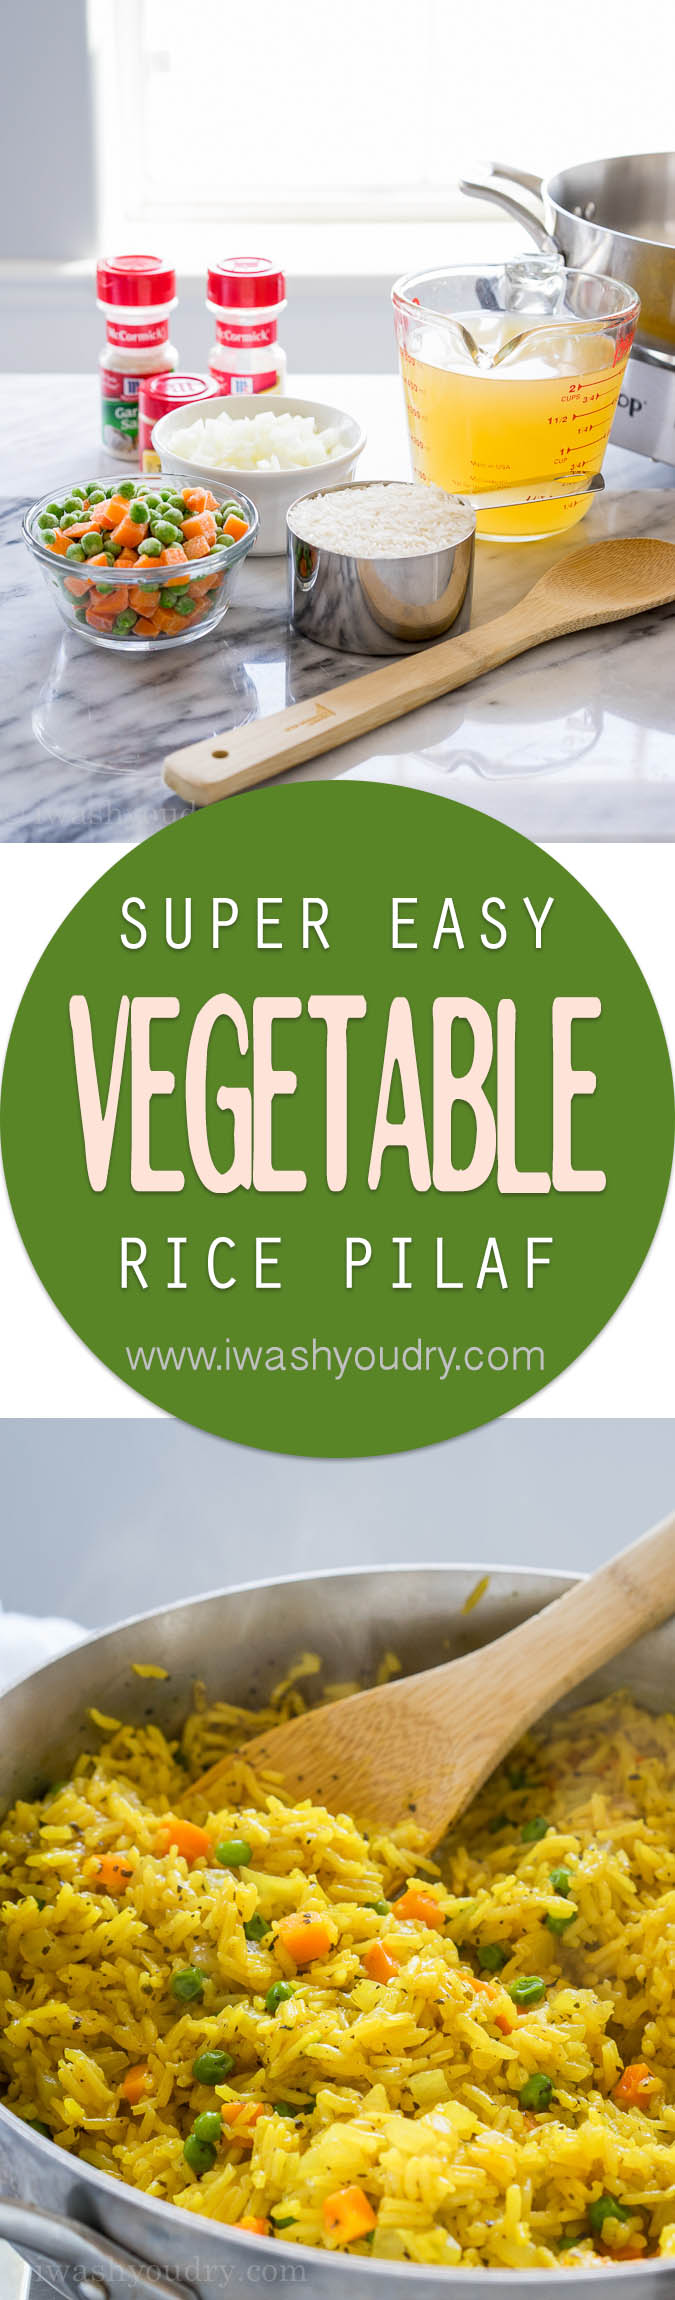 Easy Vegetable Rice Pilaf #easyricepilaf This quick and easy Vegetable Rice Pilaf is a homemade version of the boxed rice variety. My family loves this with dinner! #easyricepilaf